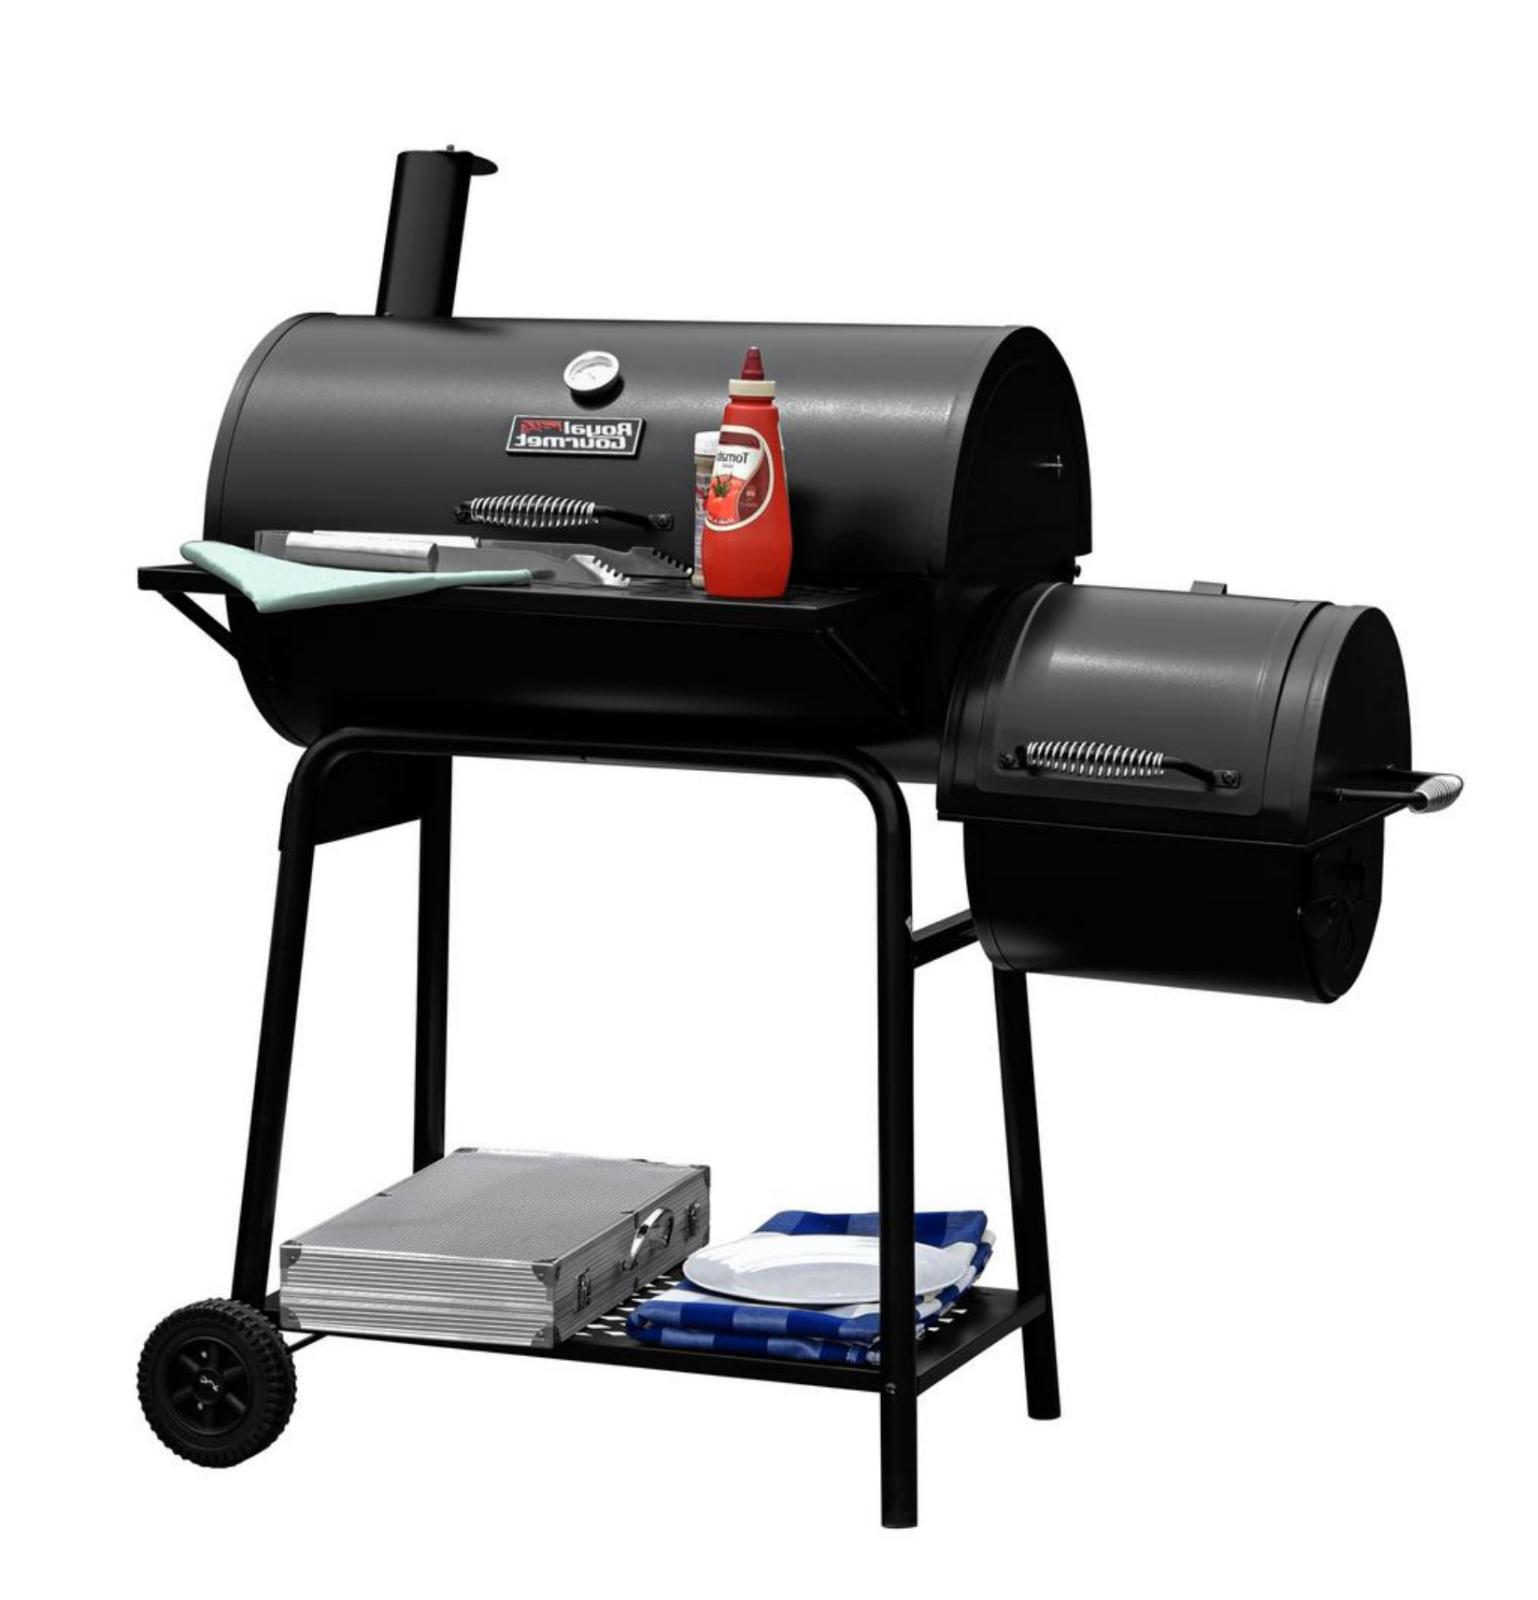 30 in. with royal gourmet bbq